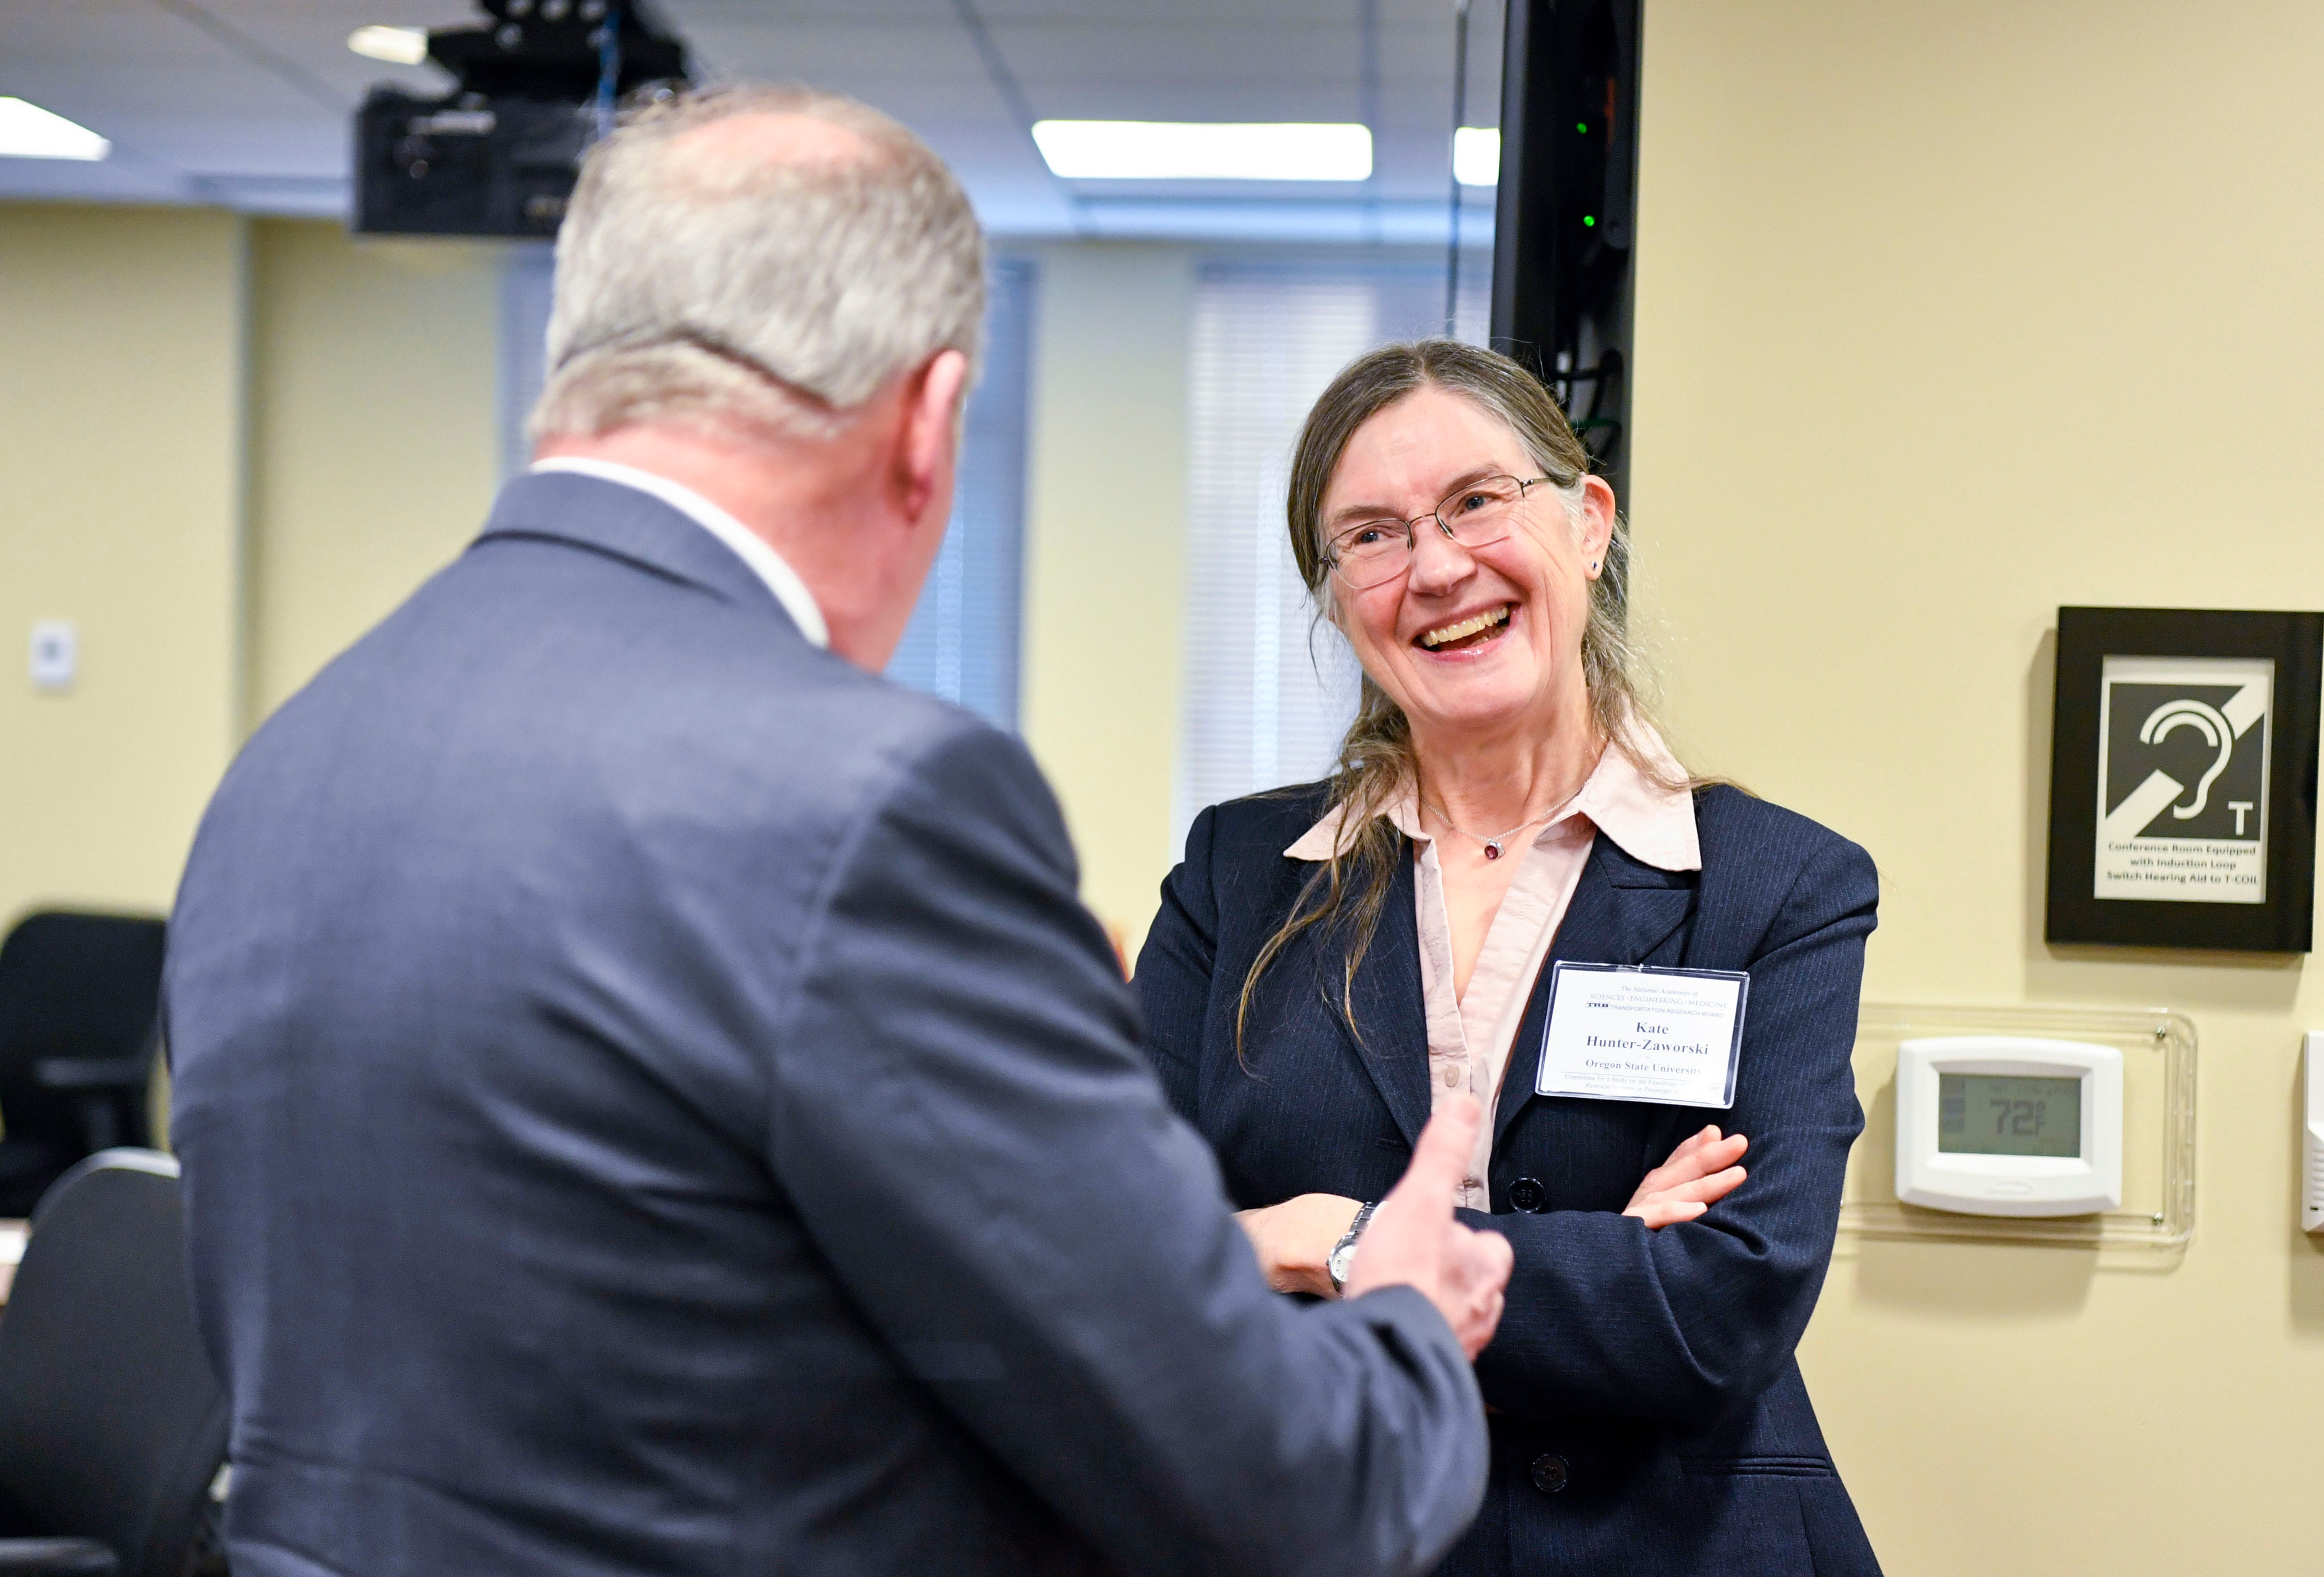 Board member Katharine M. Hunter-Zaworski talks to another member during the National Transportation Research Board meeting on the possibility of including wheelchairs on commercial flights in Washington, D.C. on Wednesday, Feb. 5, 2020.